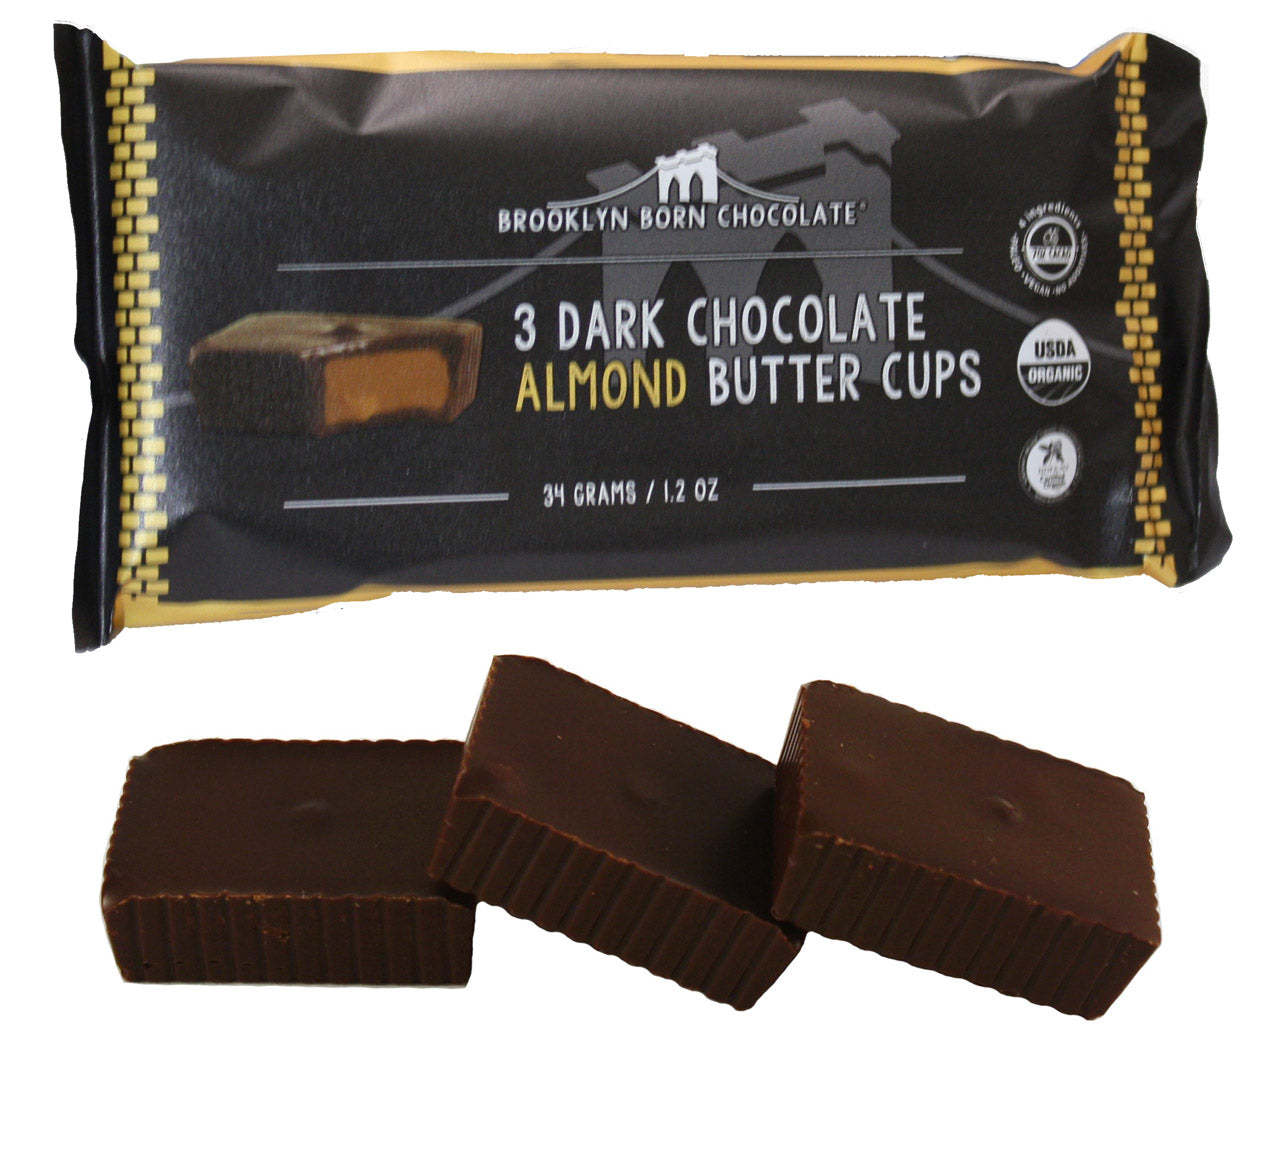 Buy Brooklyn Born Chocolate Dark Chocolate Almond Butter Cups - Package of 3 at Pure Feast